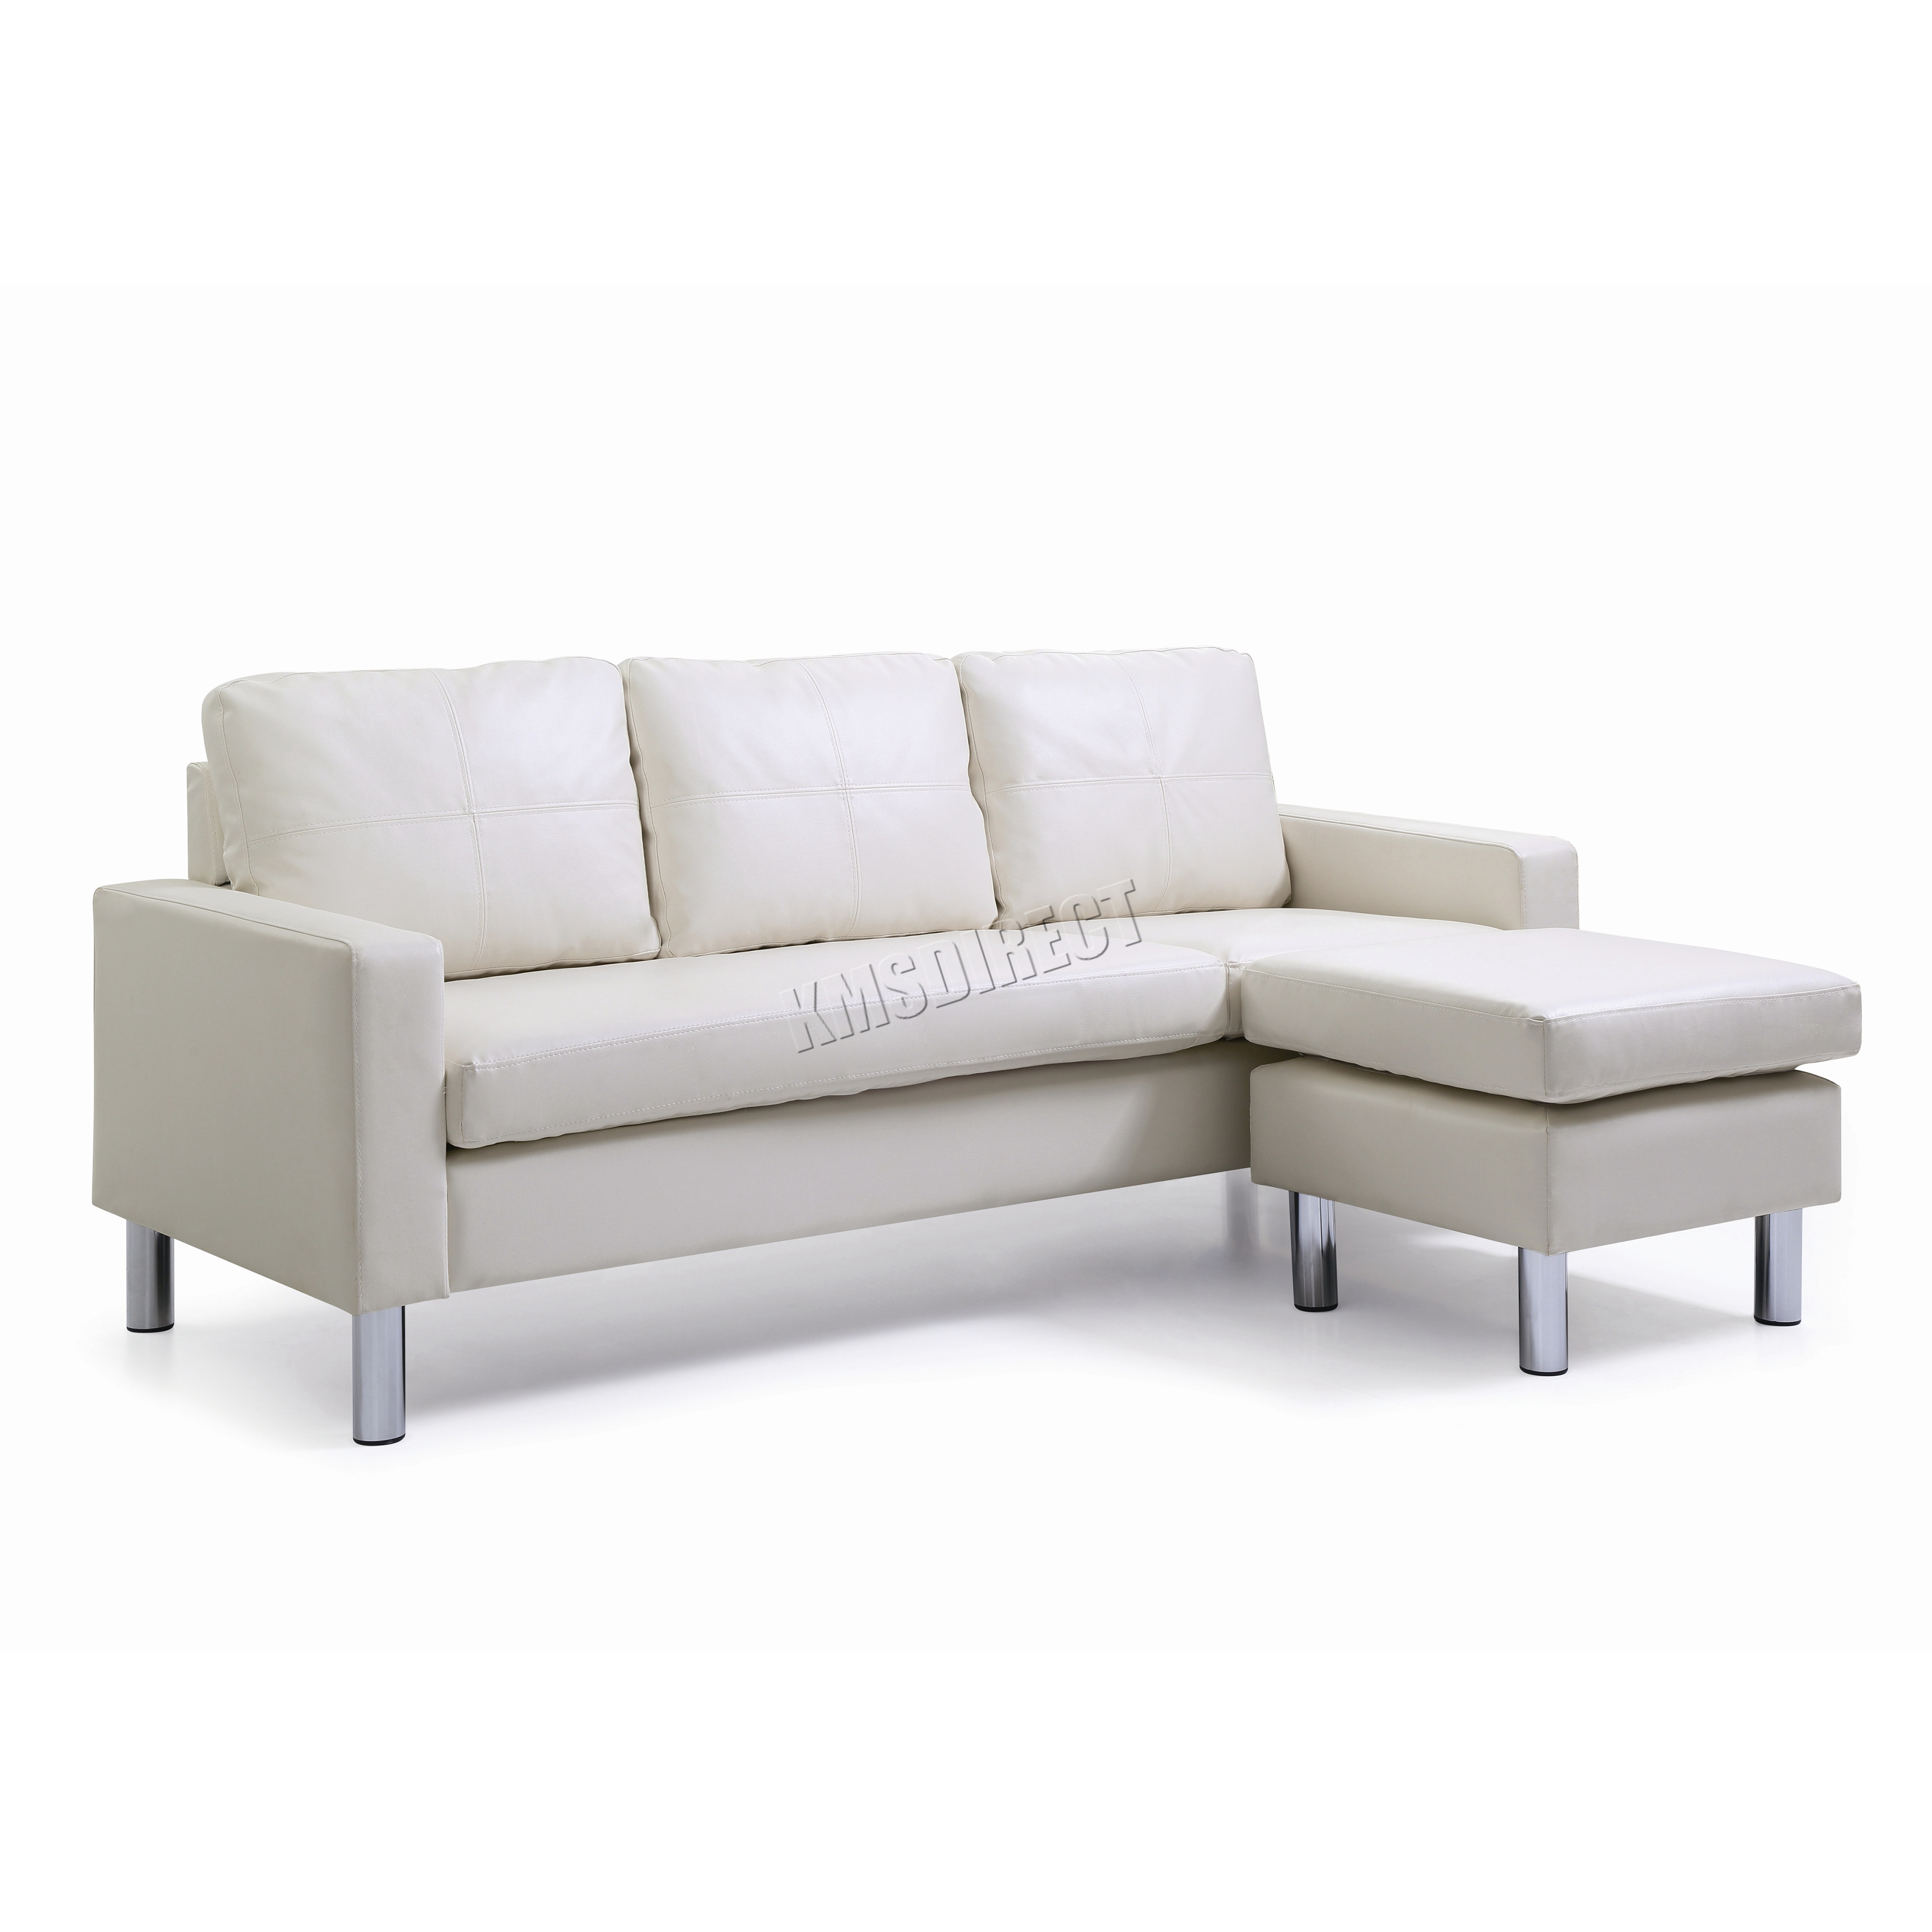 Foxhunter Modern Pu L Shaped Corner 3 Seater Sofa With Chaise Longue Pls01 White Ebay